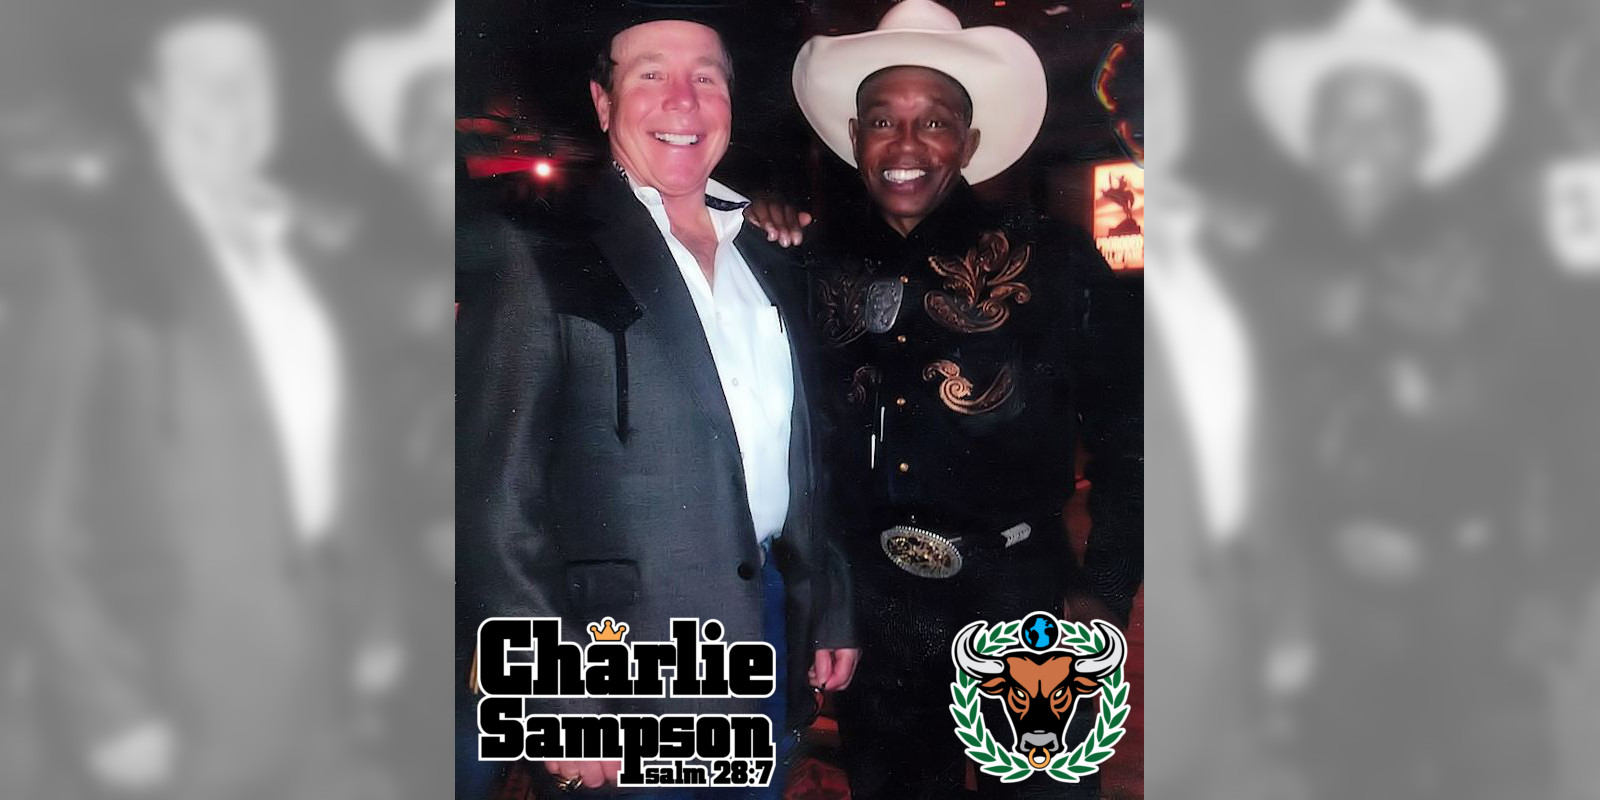 Charlie Sampson and 8x World Champion and PRCA Hall of Famer Bull Rider Donnie Gay being honored at the 2013 PRCA Legend Dinner in Las Vegas Nevada